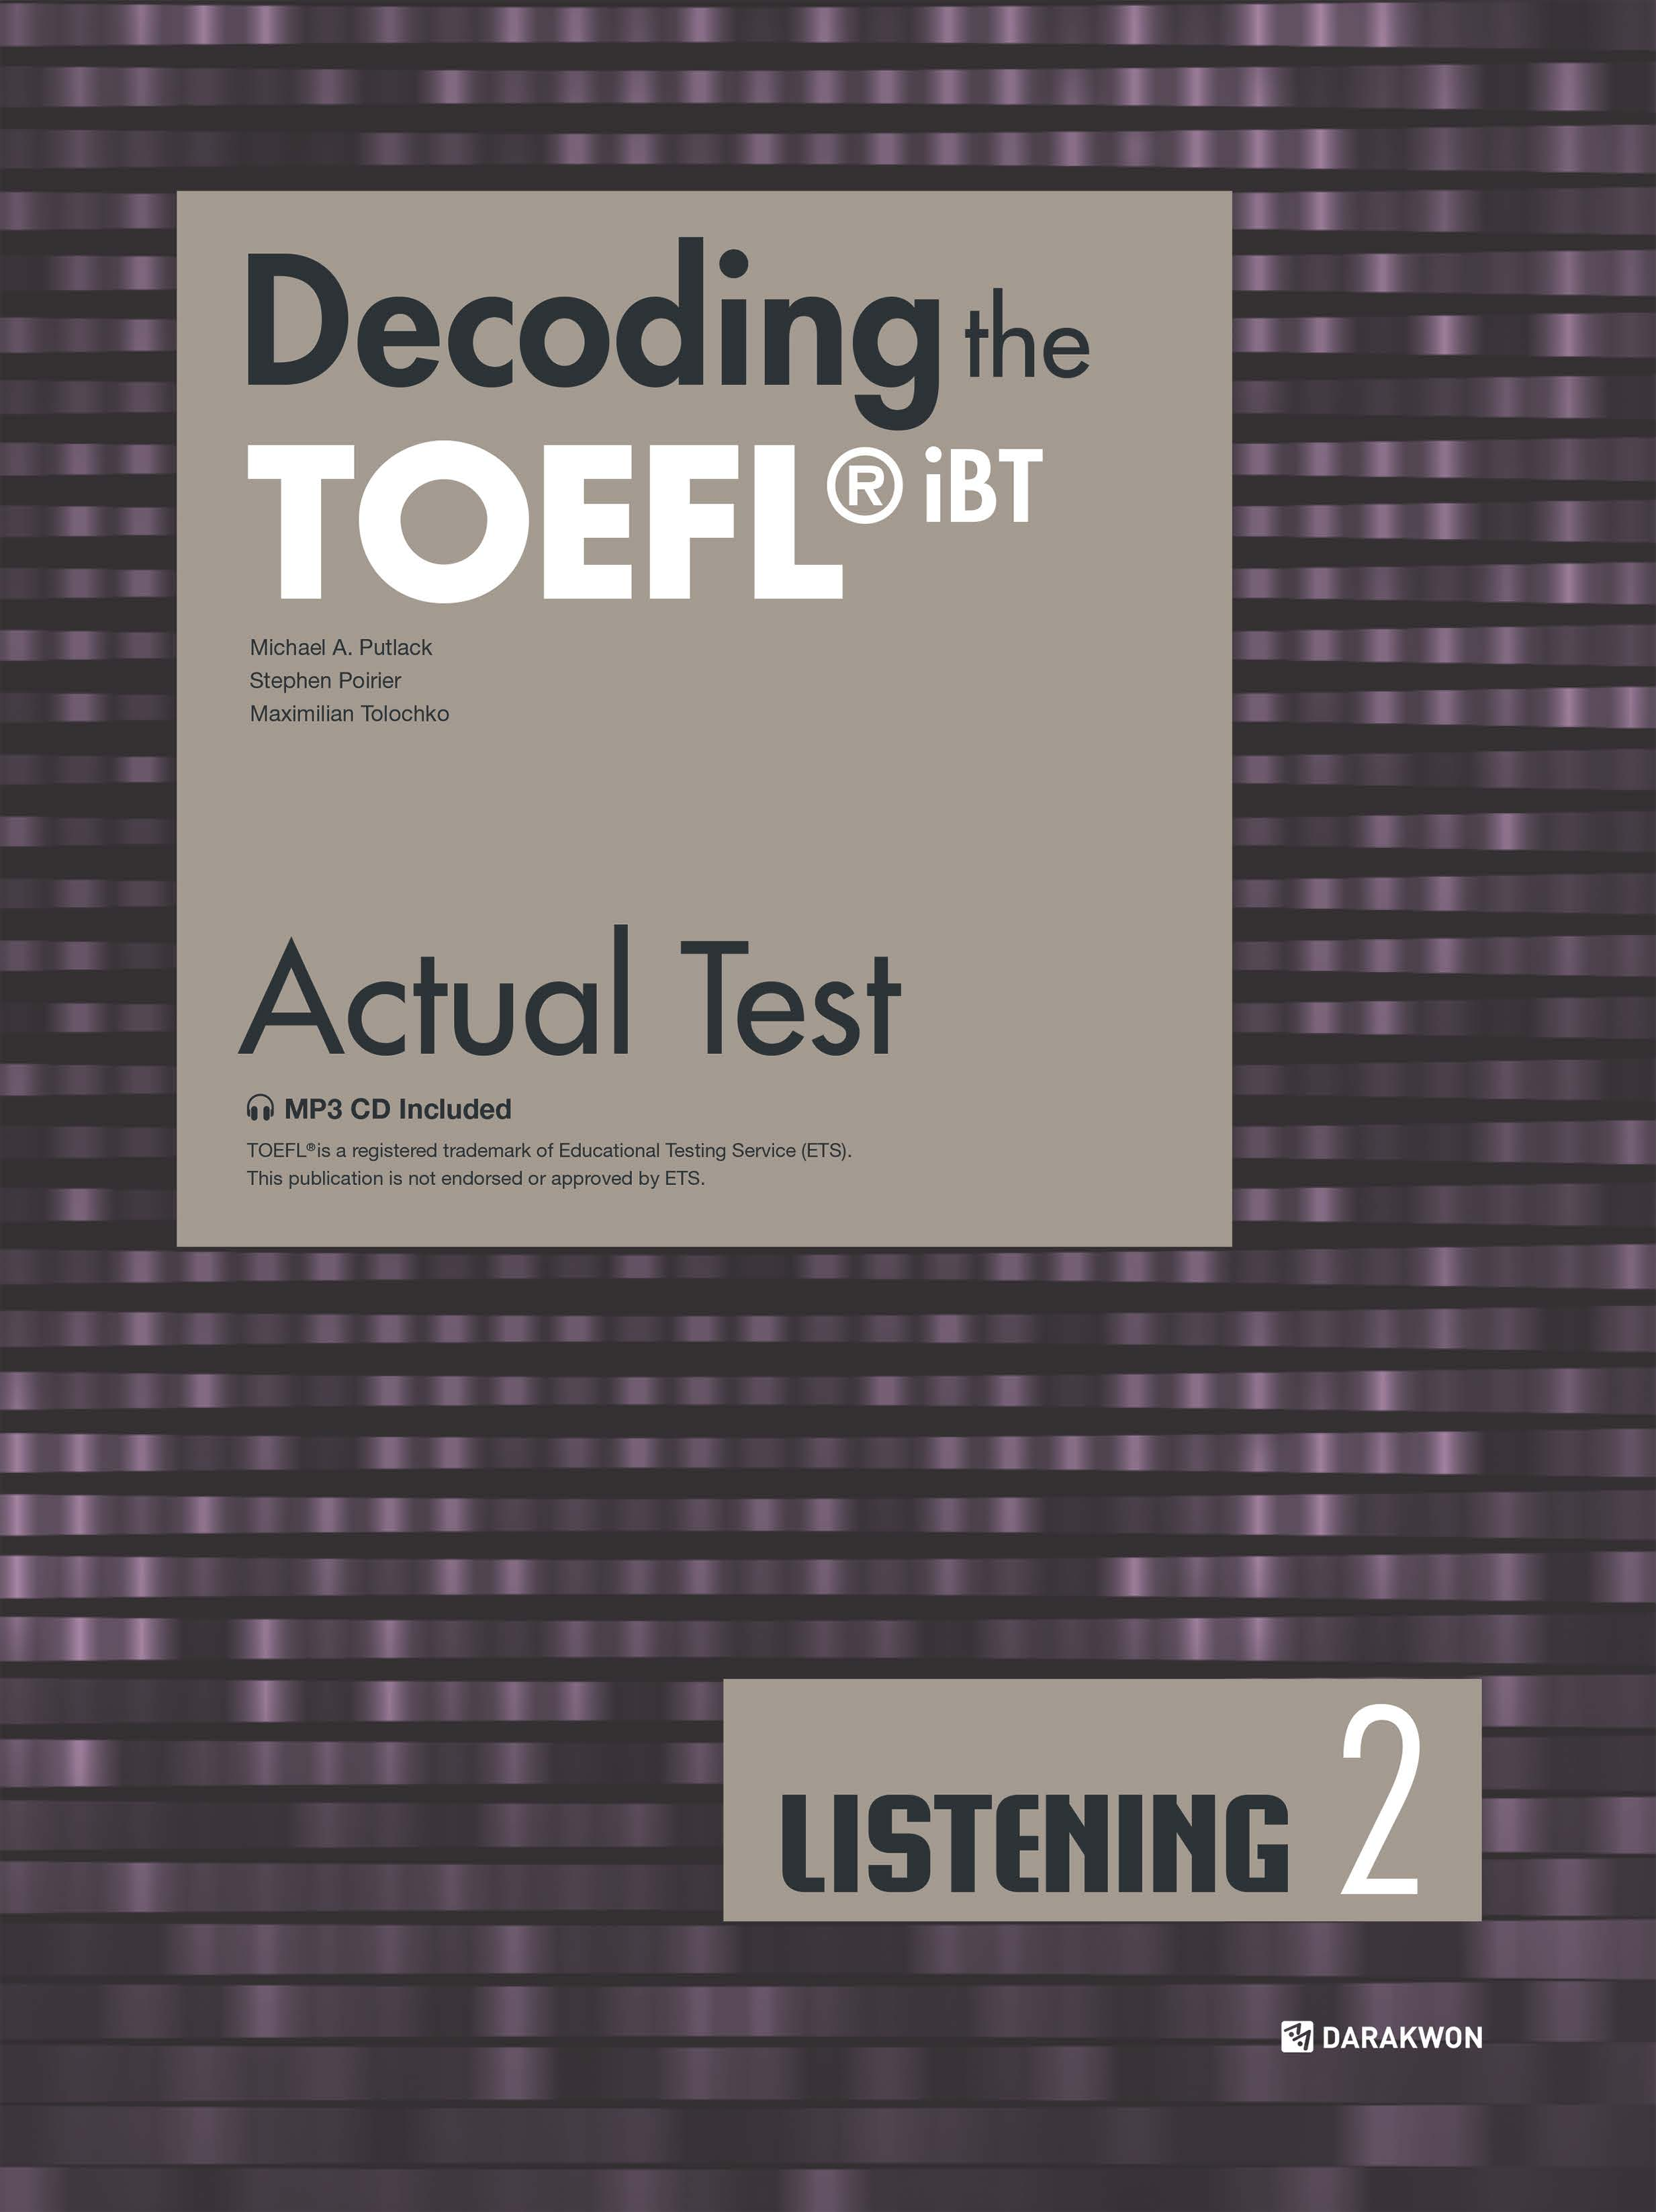 [Decoding the TOEFL iBT Actual Test] Decoding the TOEFL iBT Actual Test LISTENING 2